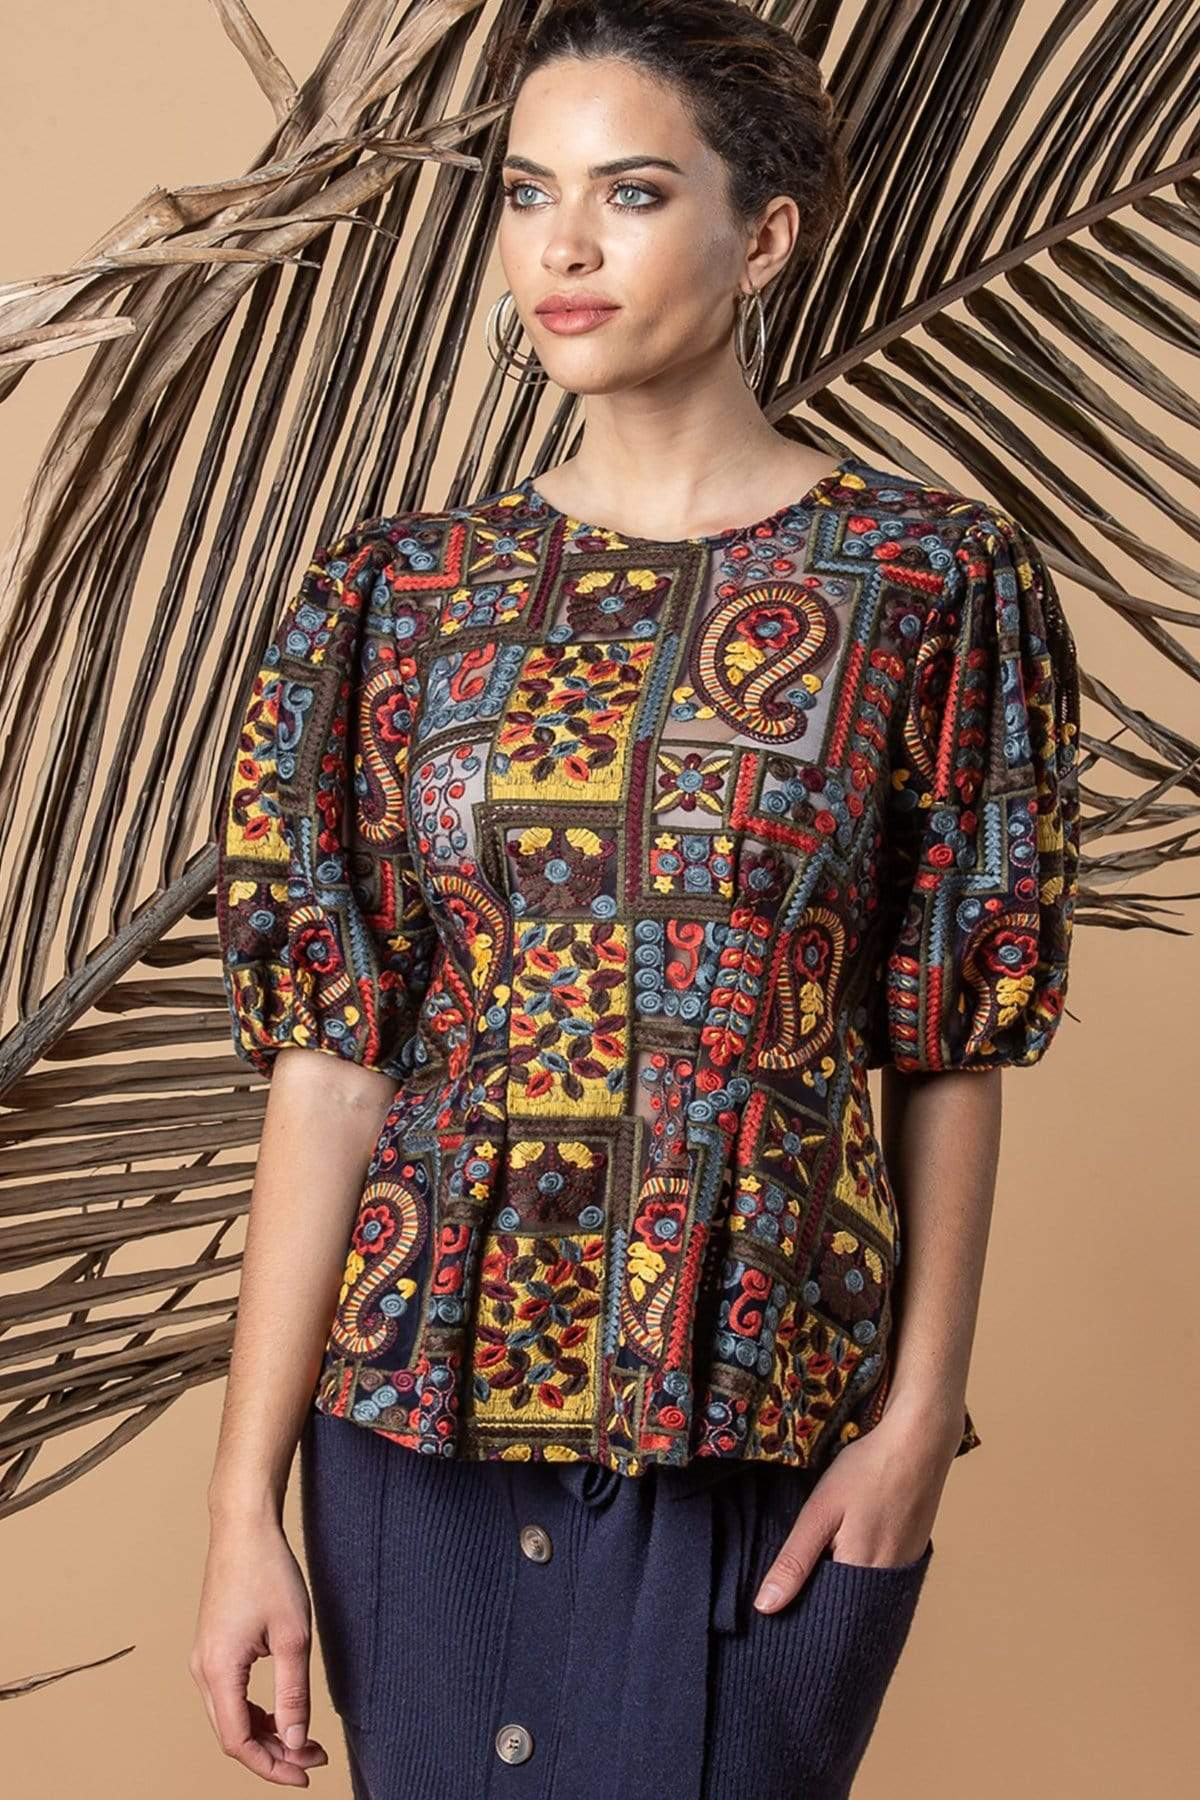 Eva Franco Top Virginia Top - Florika Paisley